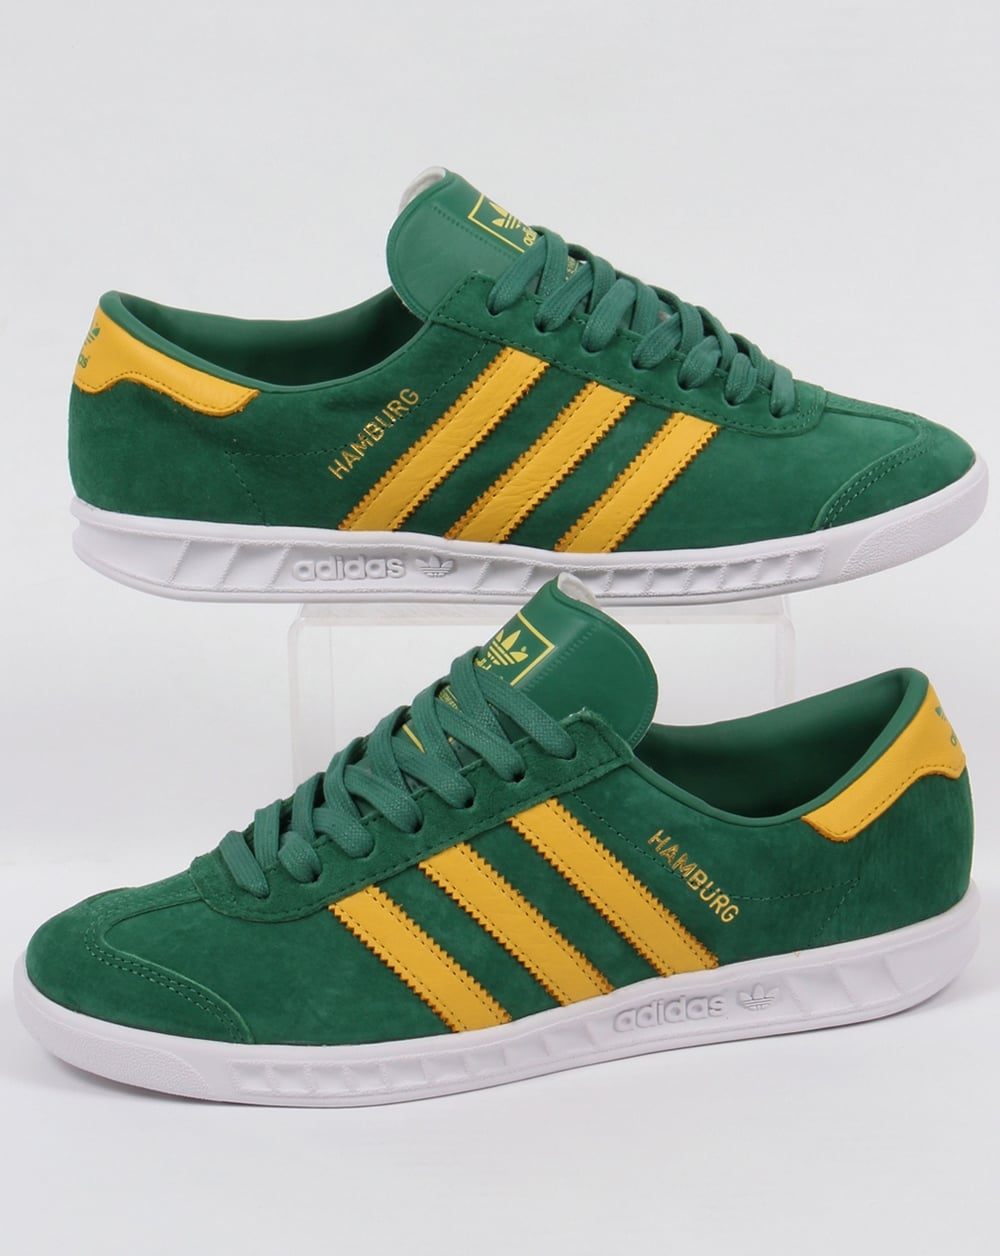 187afce8aa9fcb adidas Trainers Adidas Hamburg Trainers Green Yellow White